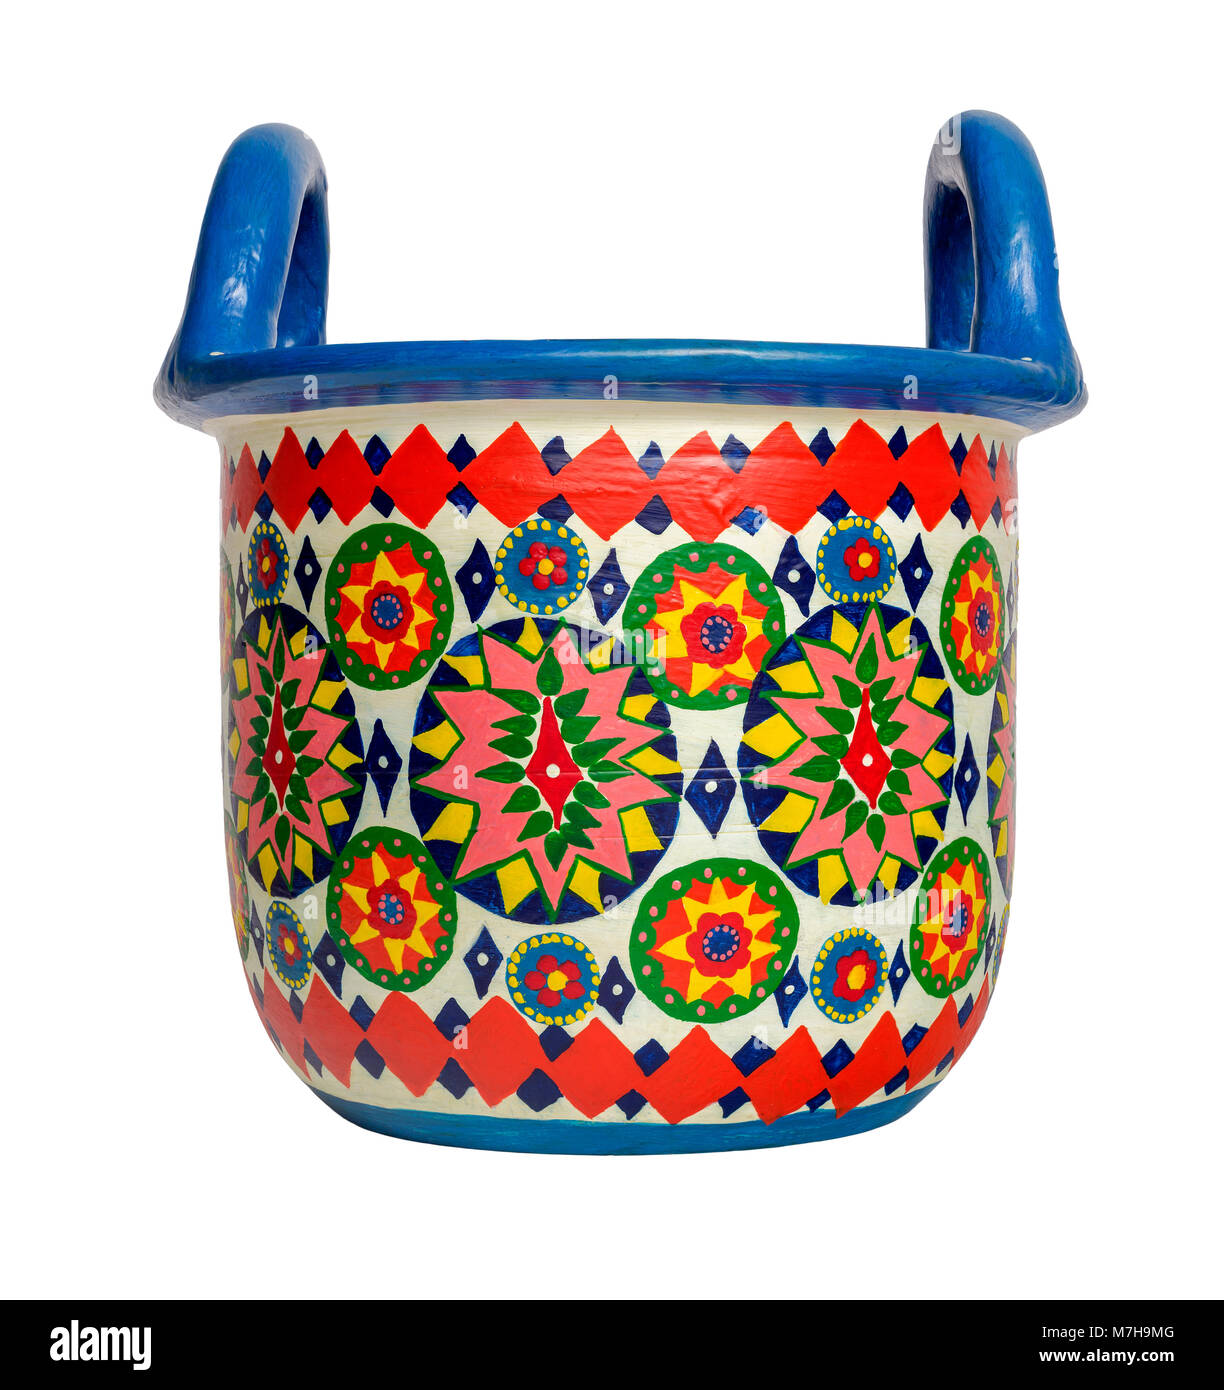 Handmade artistic pained colorful decorated pottery basket with two handles on white background isolated on white - Stock Image